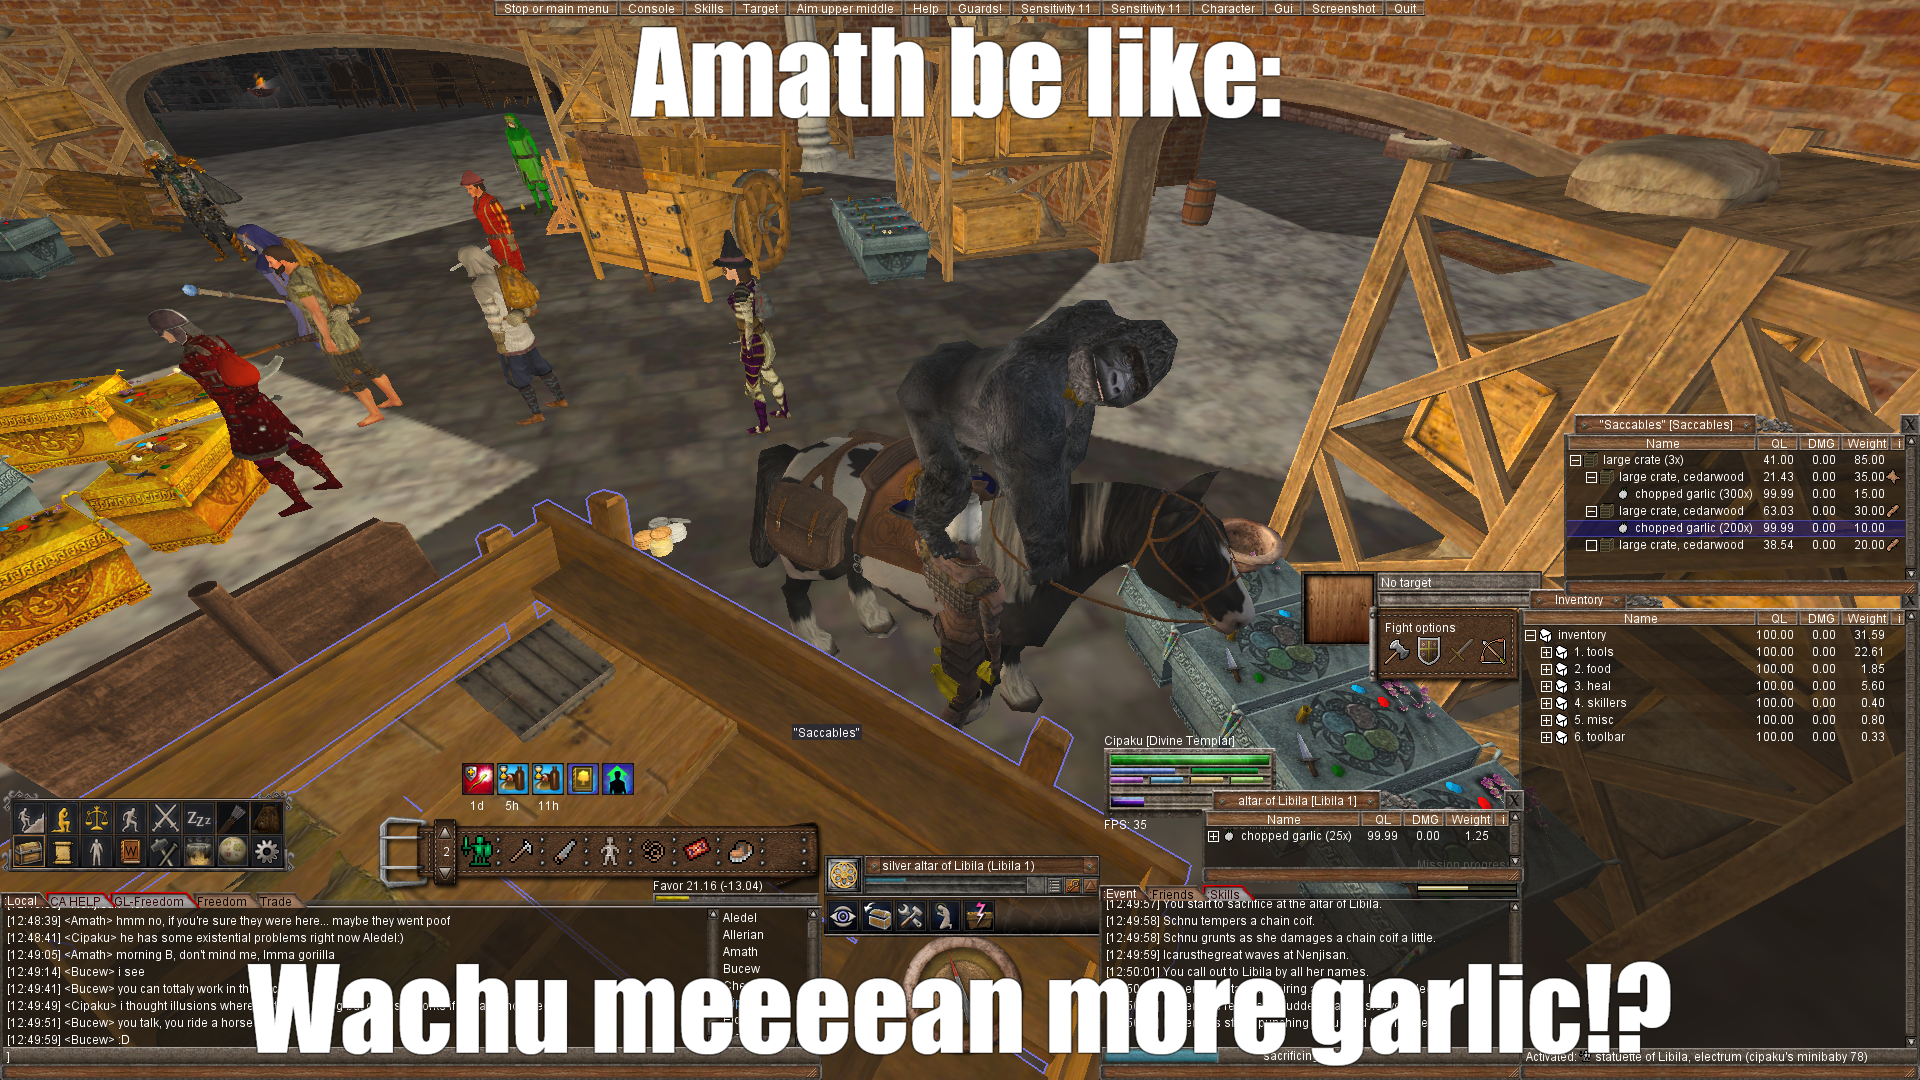 amath-wachumean-more-garlic.png